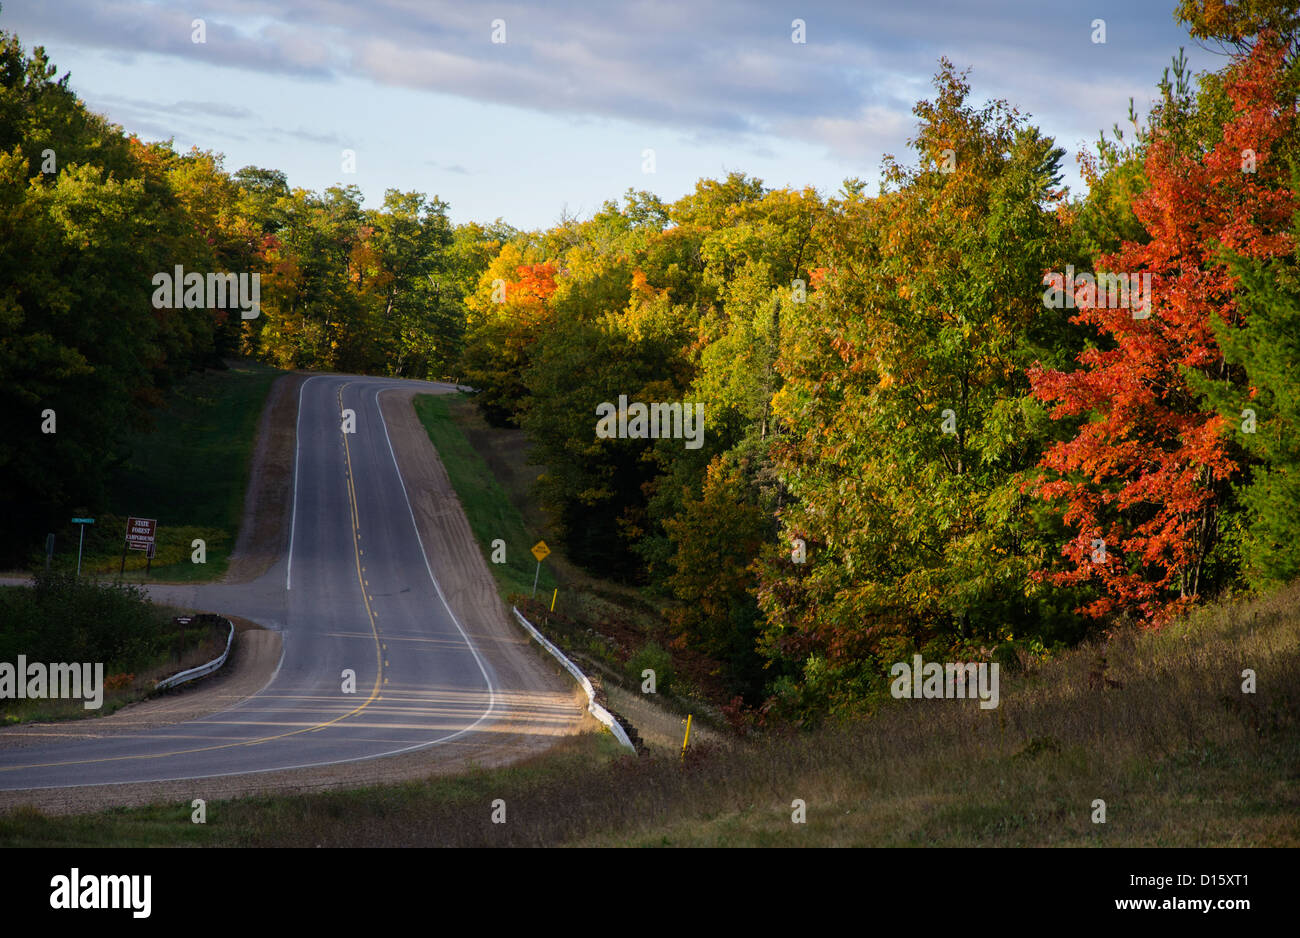 Autumn leaves on trees along Highway 51 in the Northwoods of Wisconsin - Stock Image